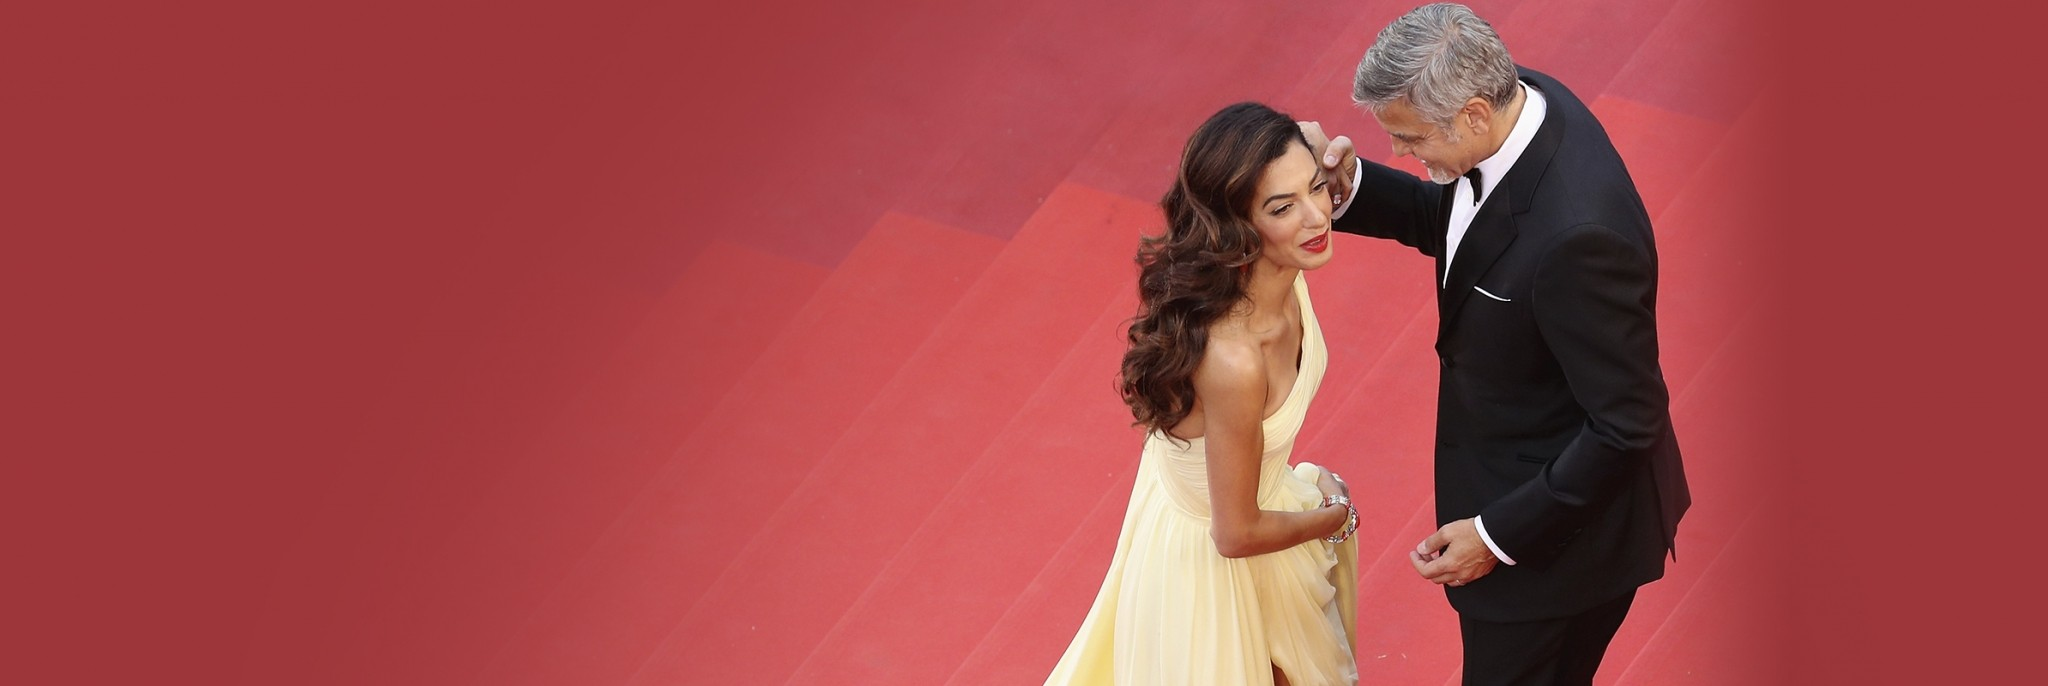 Are These the Most Iconic Duos in Red-Carpet History?